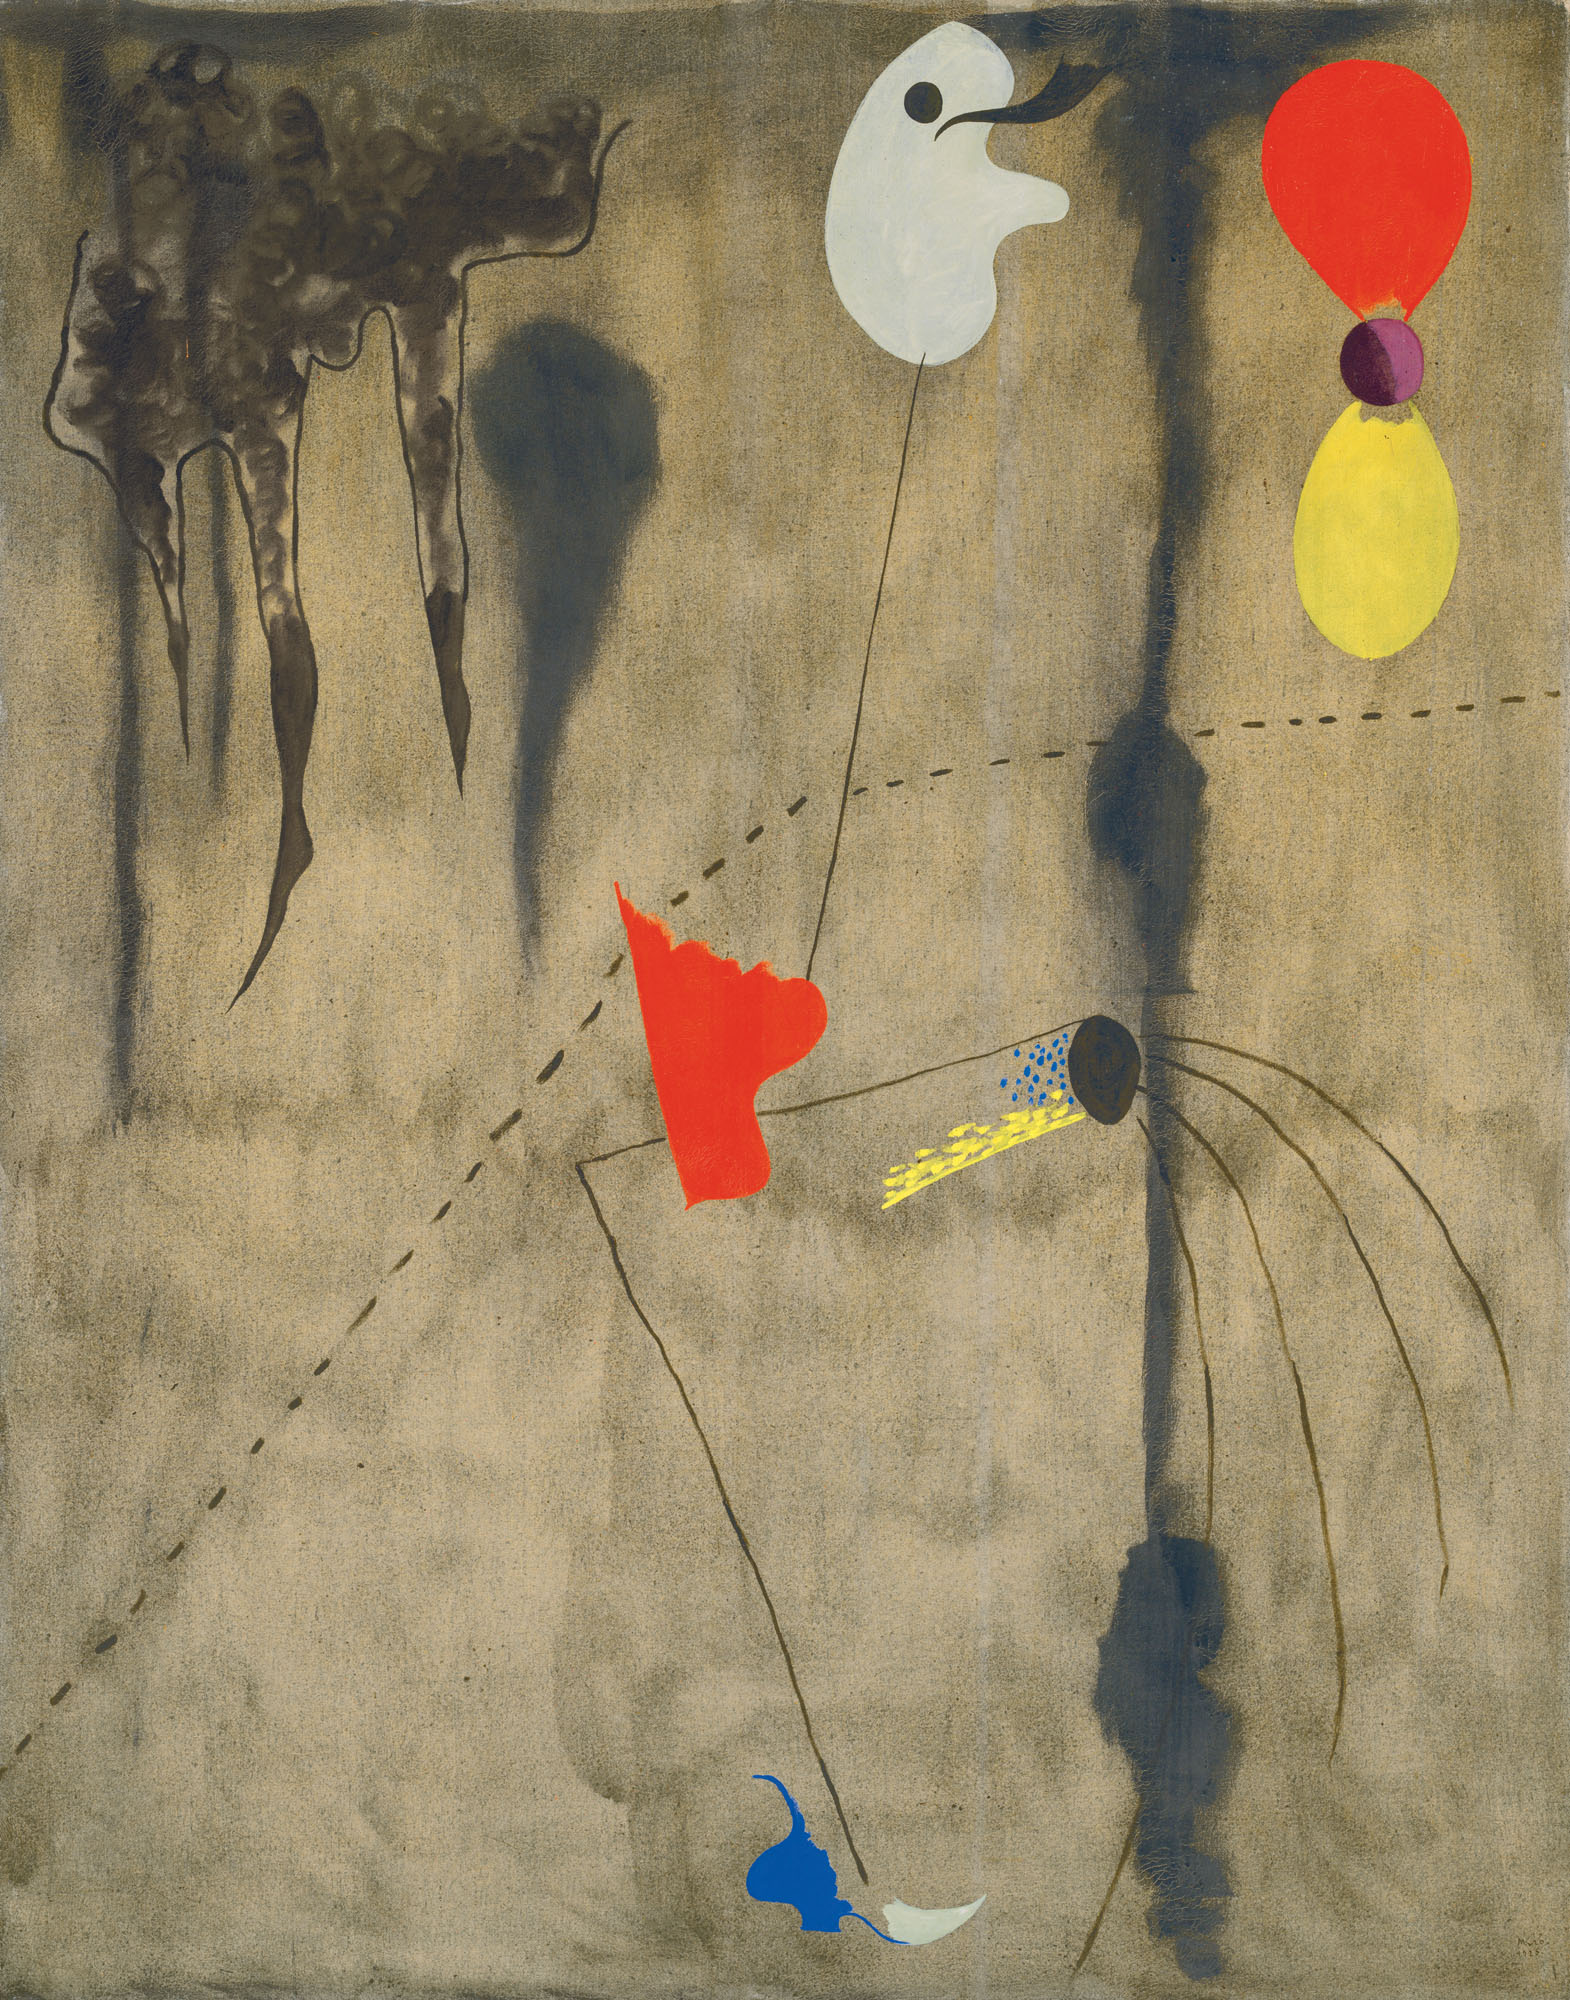 Joan Miró (1893-1983), Peinture, 1925.Oil on canvas. 57 12 x 45 in. (146 x 114.3 cm.). Sold for £10,231,500 on 23 March 2021 at Christie's in London